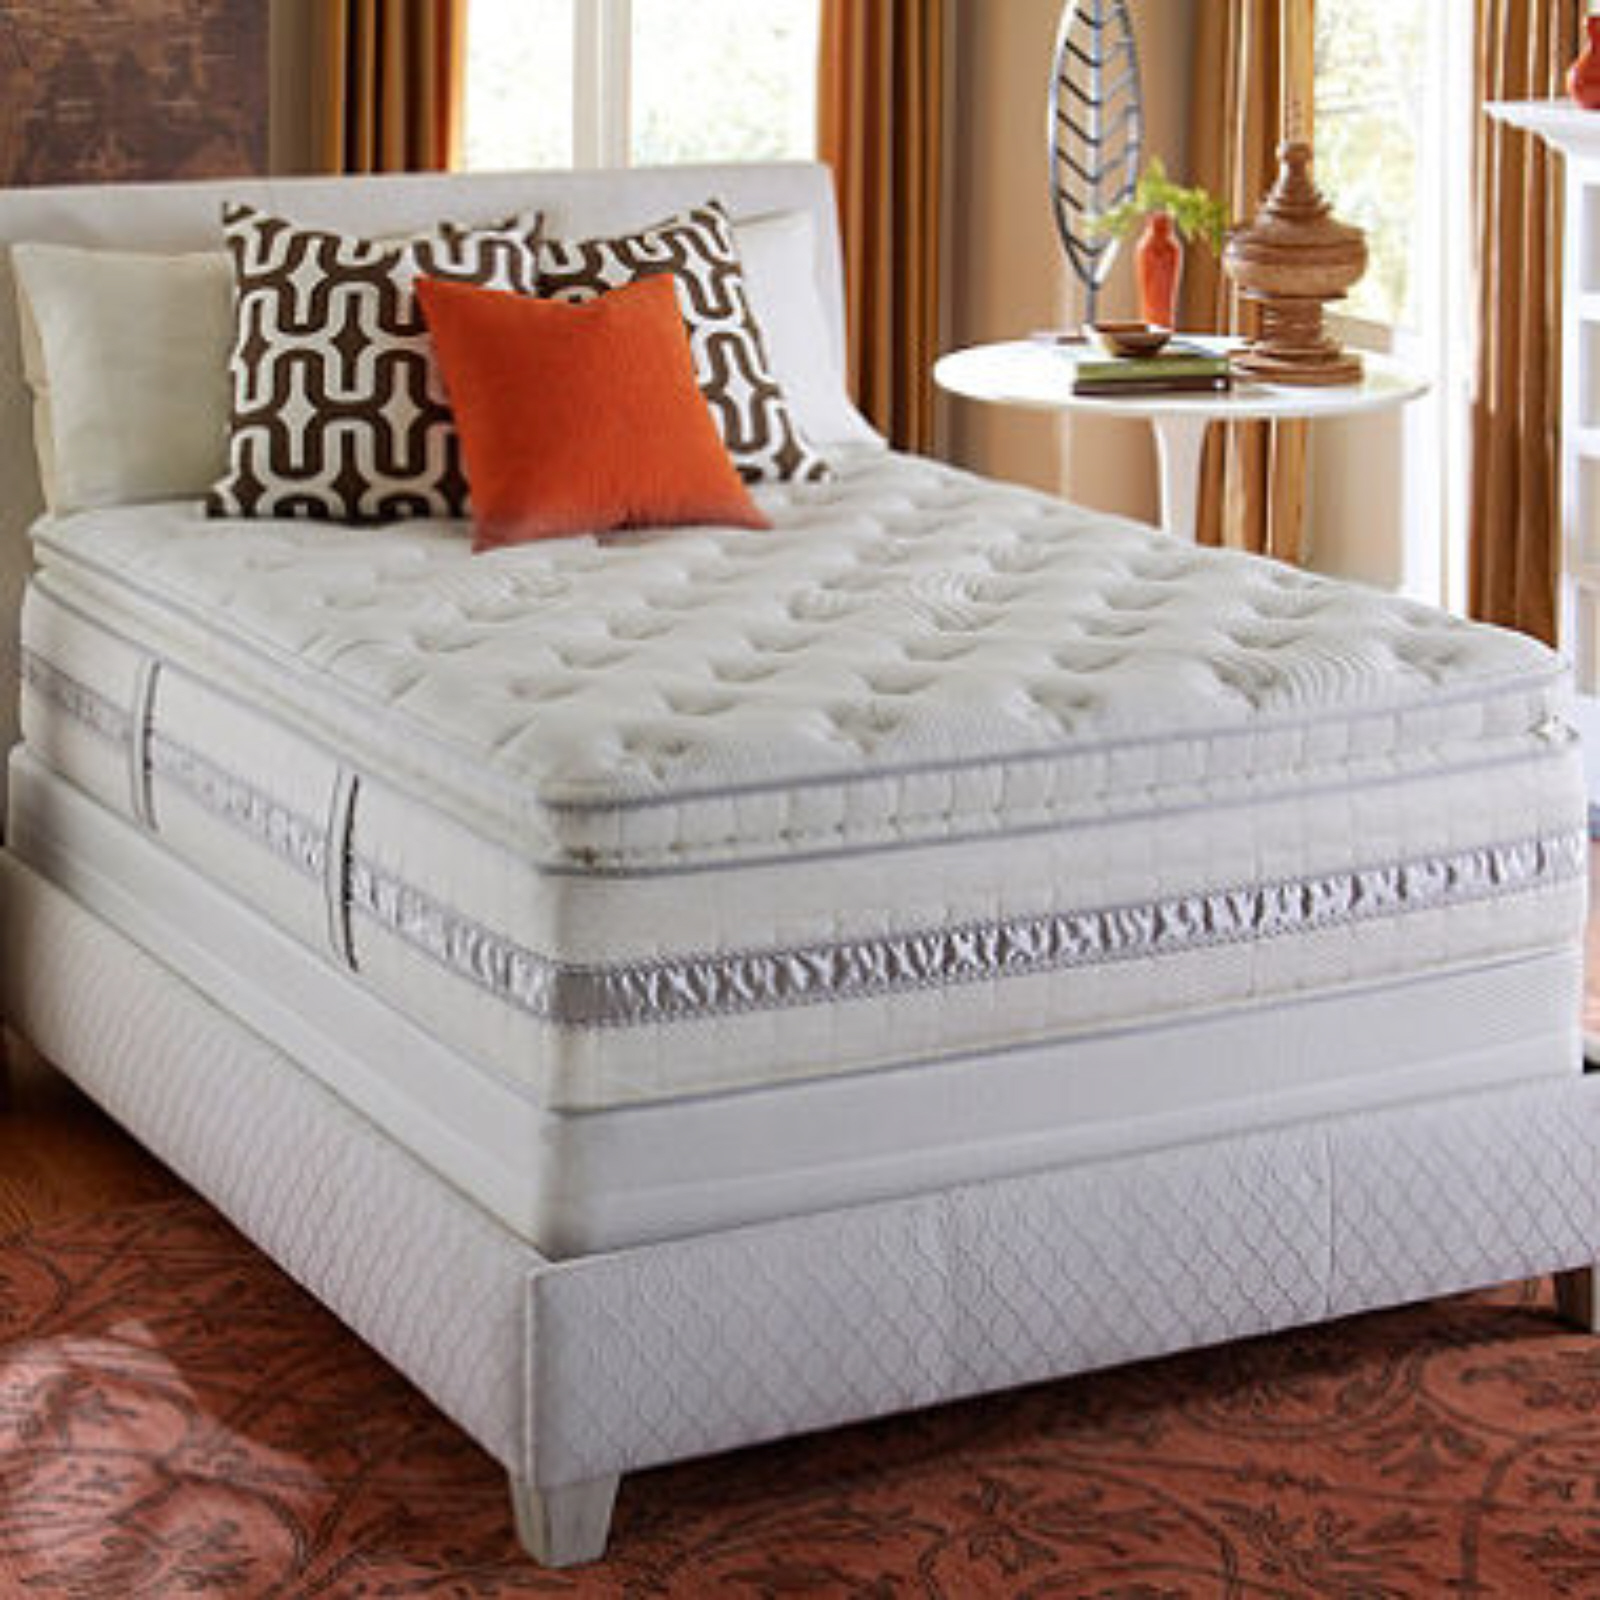 Perfect Sleeper Kingsdale Super Pillowtop Mattress Set Full Bedroom Furniture Beds Mattresses